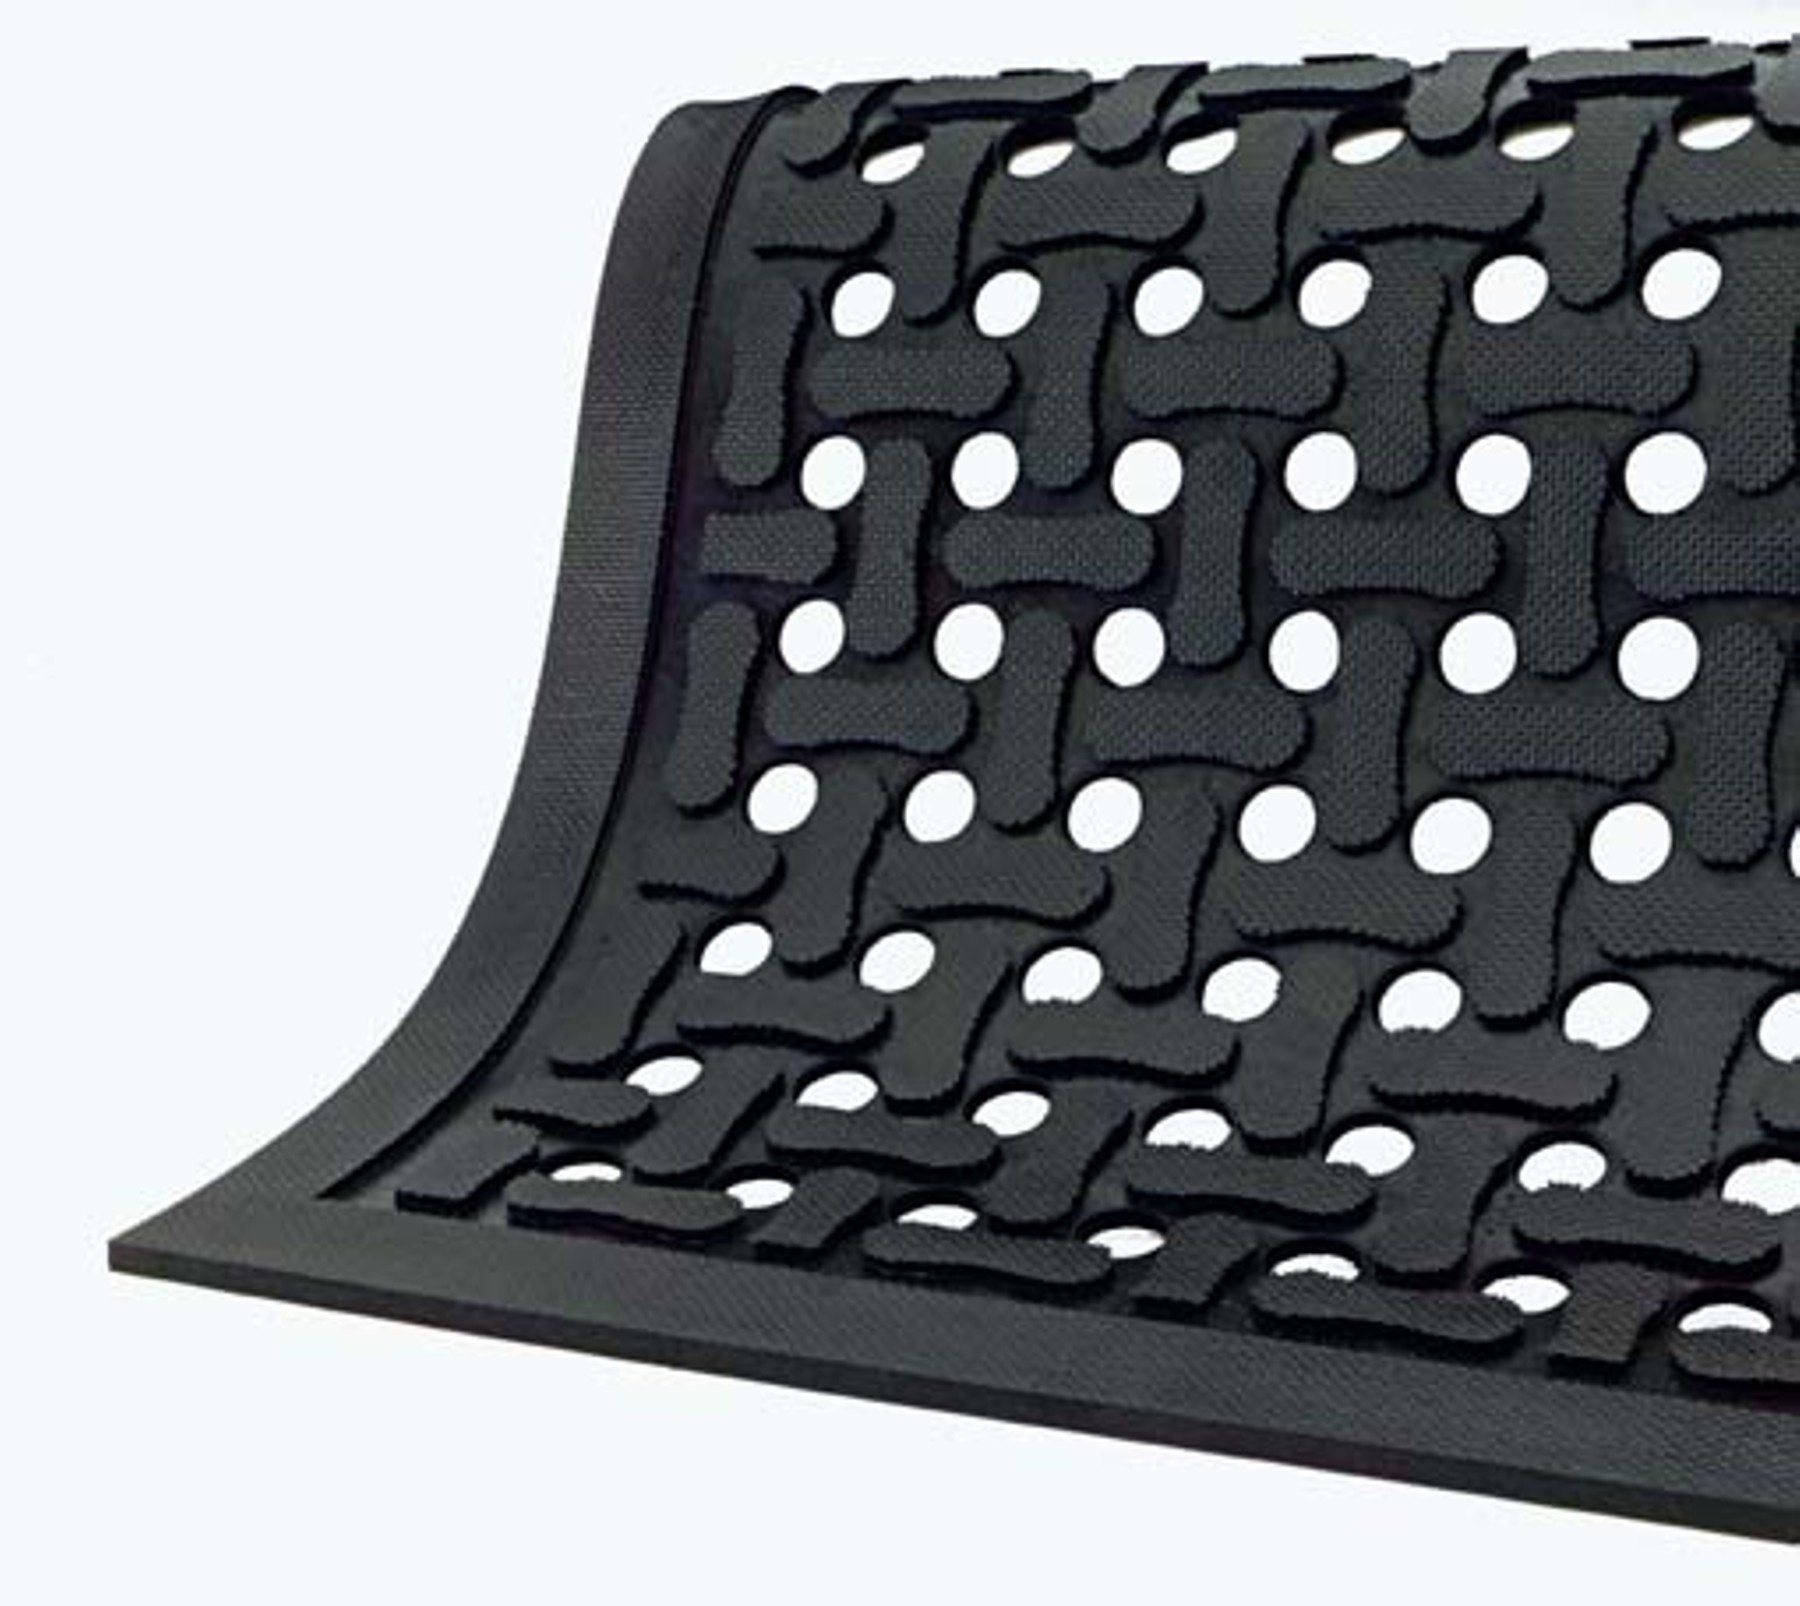 Comfort Flow Black Rubber Commercial Kitchen Drainage Mat, Anti-Fatigue, Slip and Grease/Oil Resistant 3' Length x 2' Width, by M+A Matting